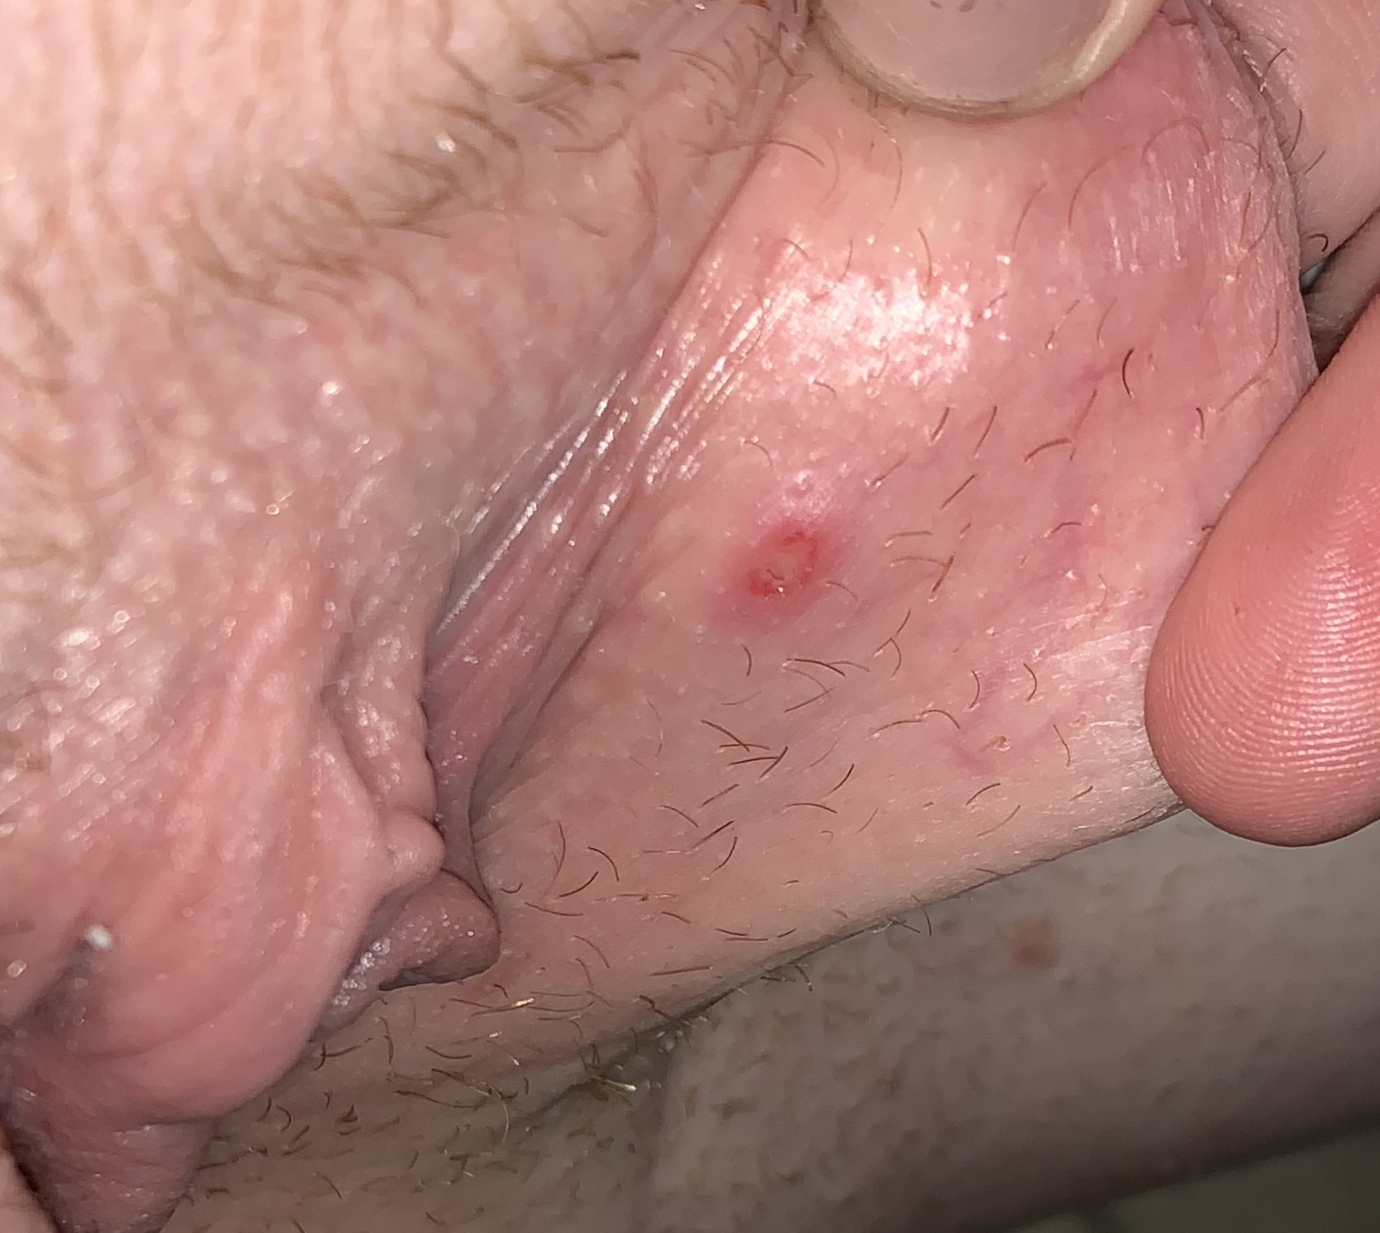 Rashes, Bumps, And Lumps Below The Belt